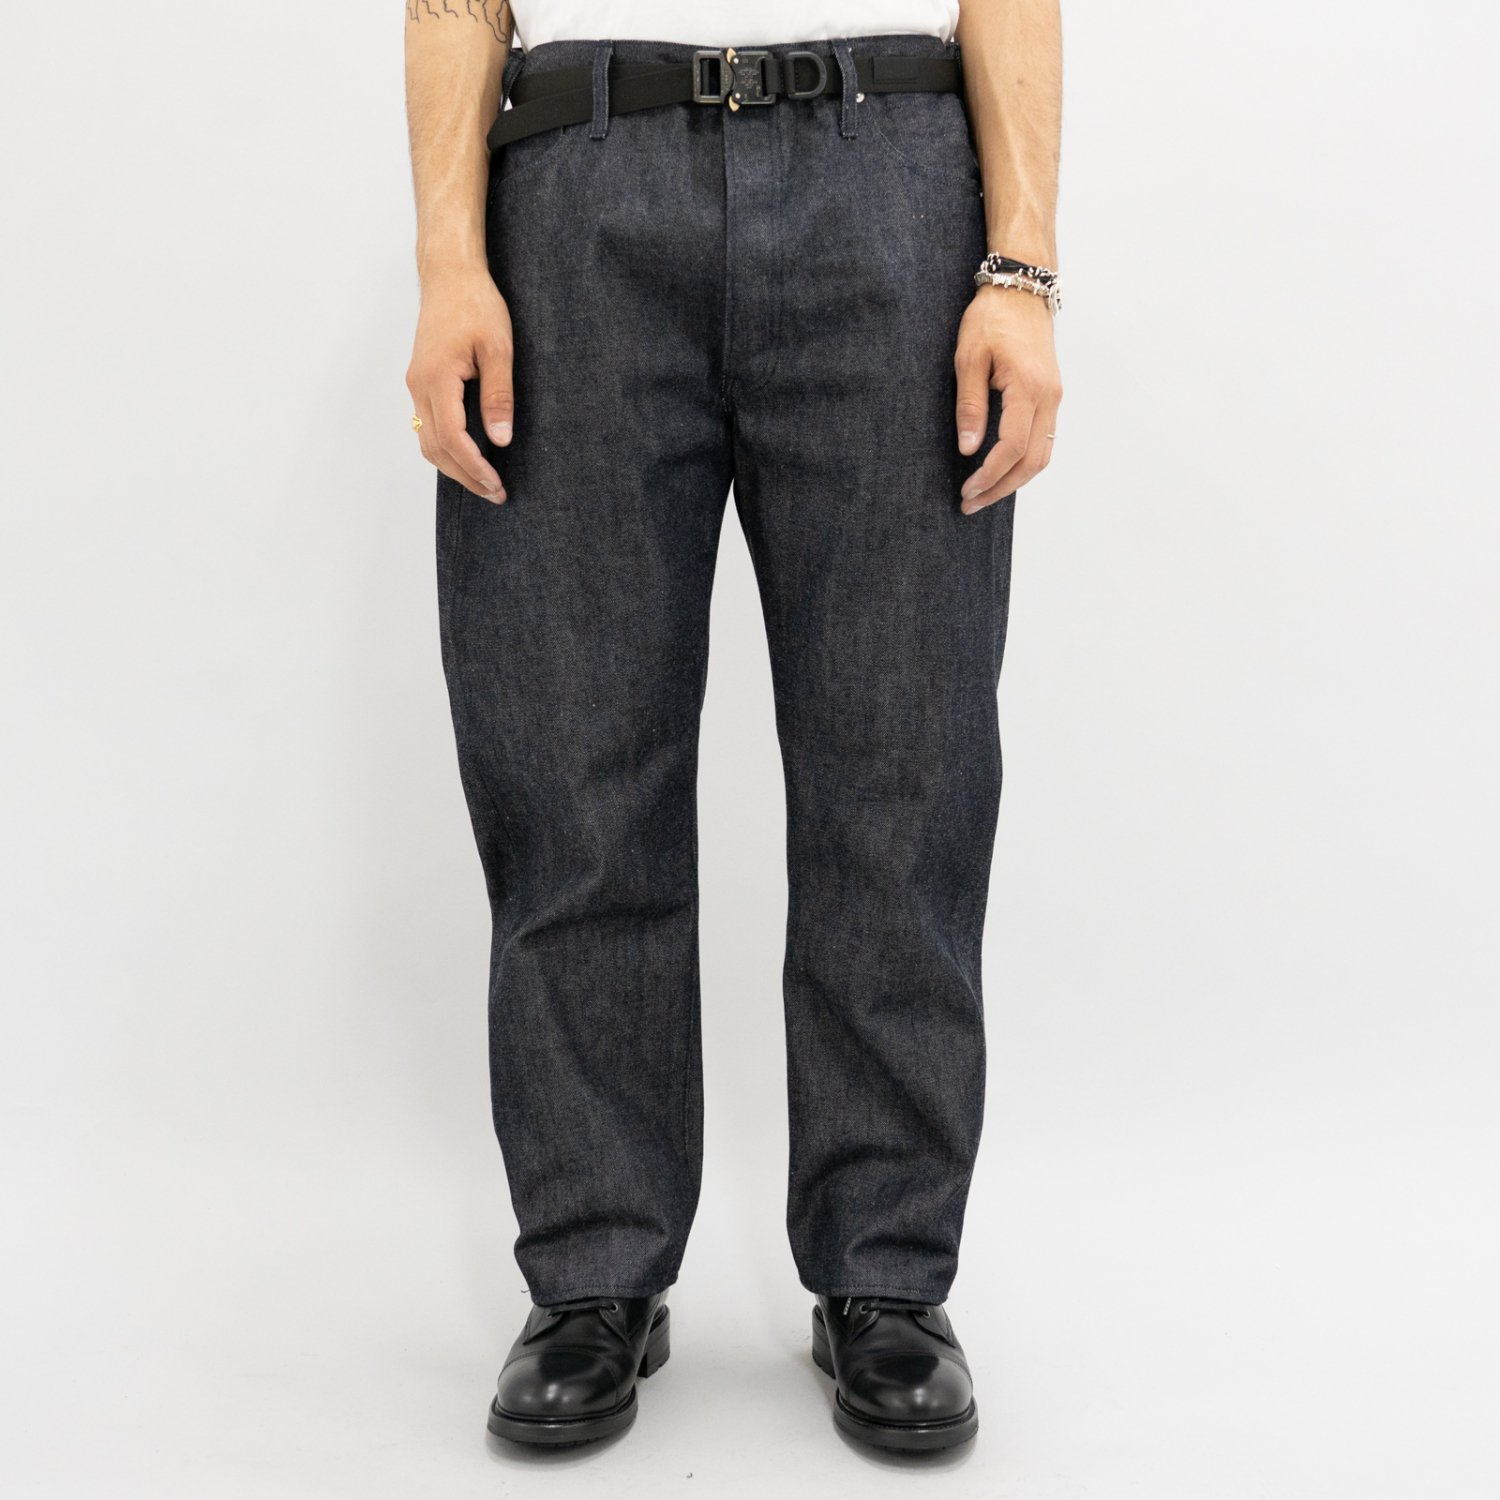 NORITAKE/HARADA * Denim Pants 38inch Short